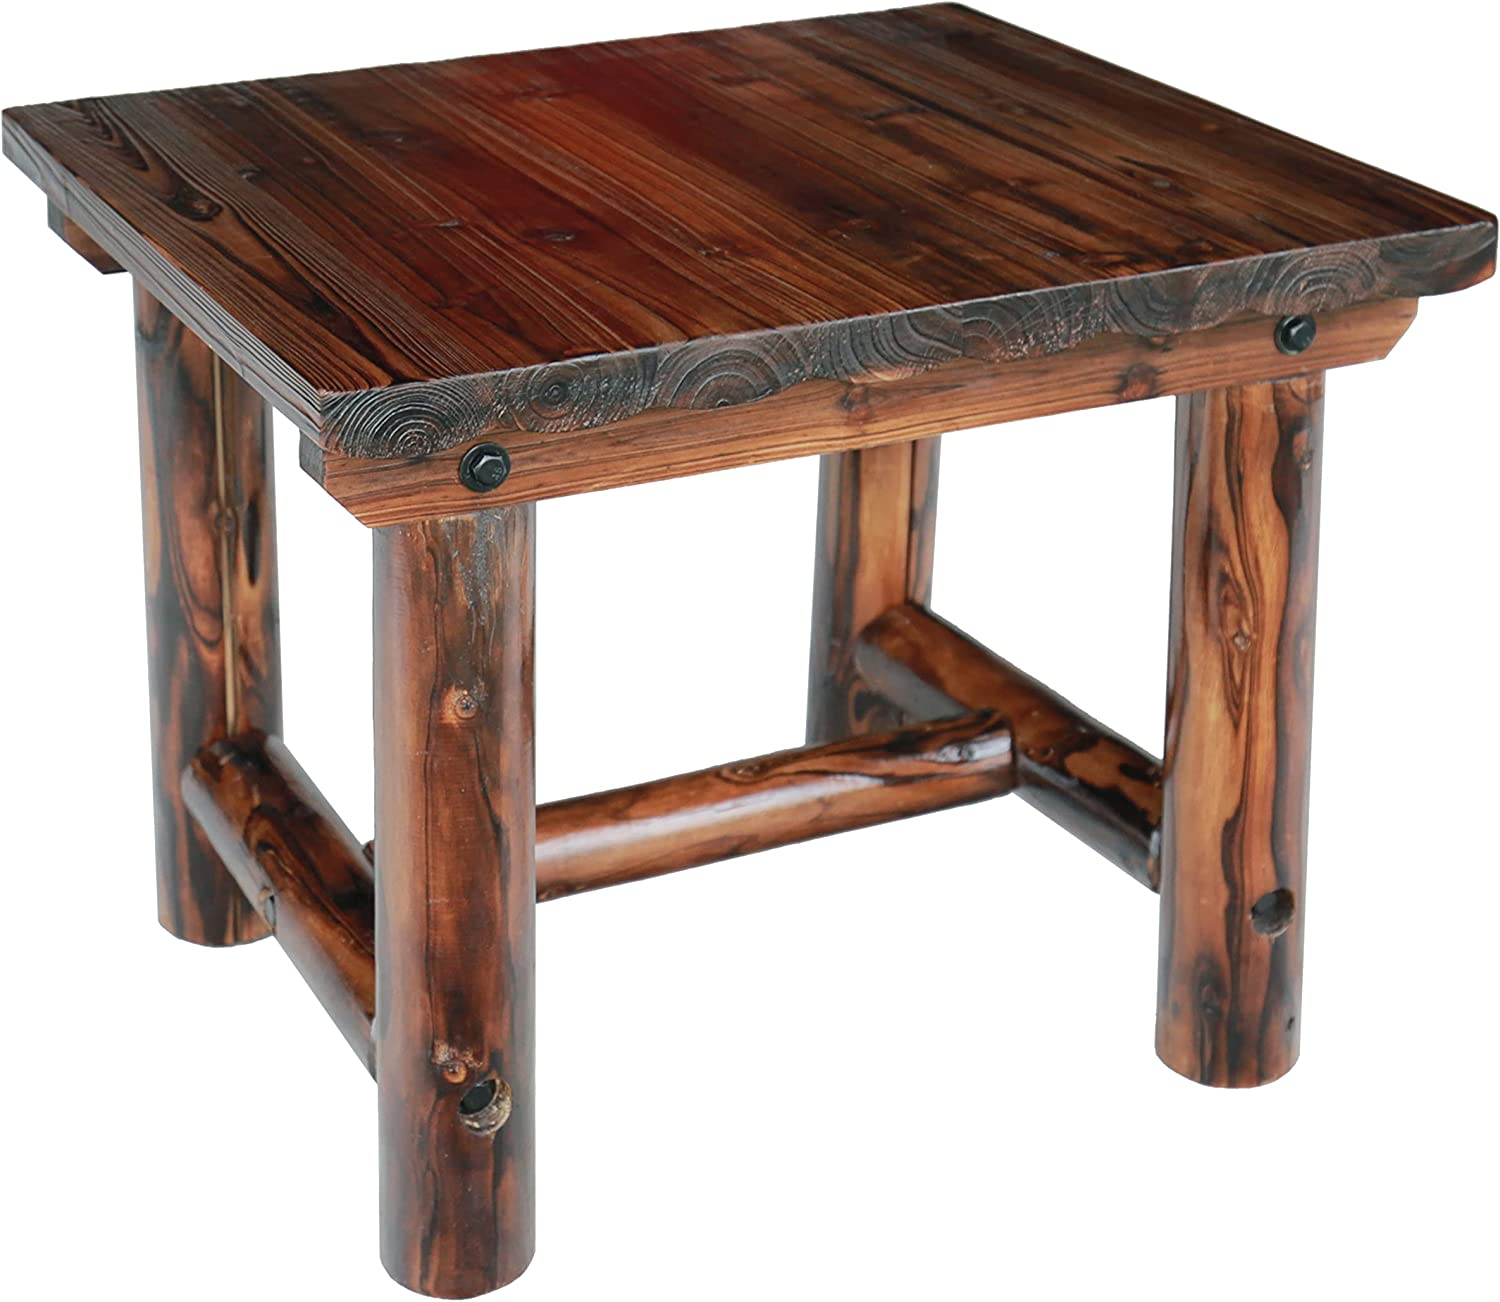 Leigh Country TX 96012 Char-Log Side Table, Brown